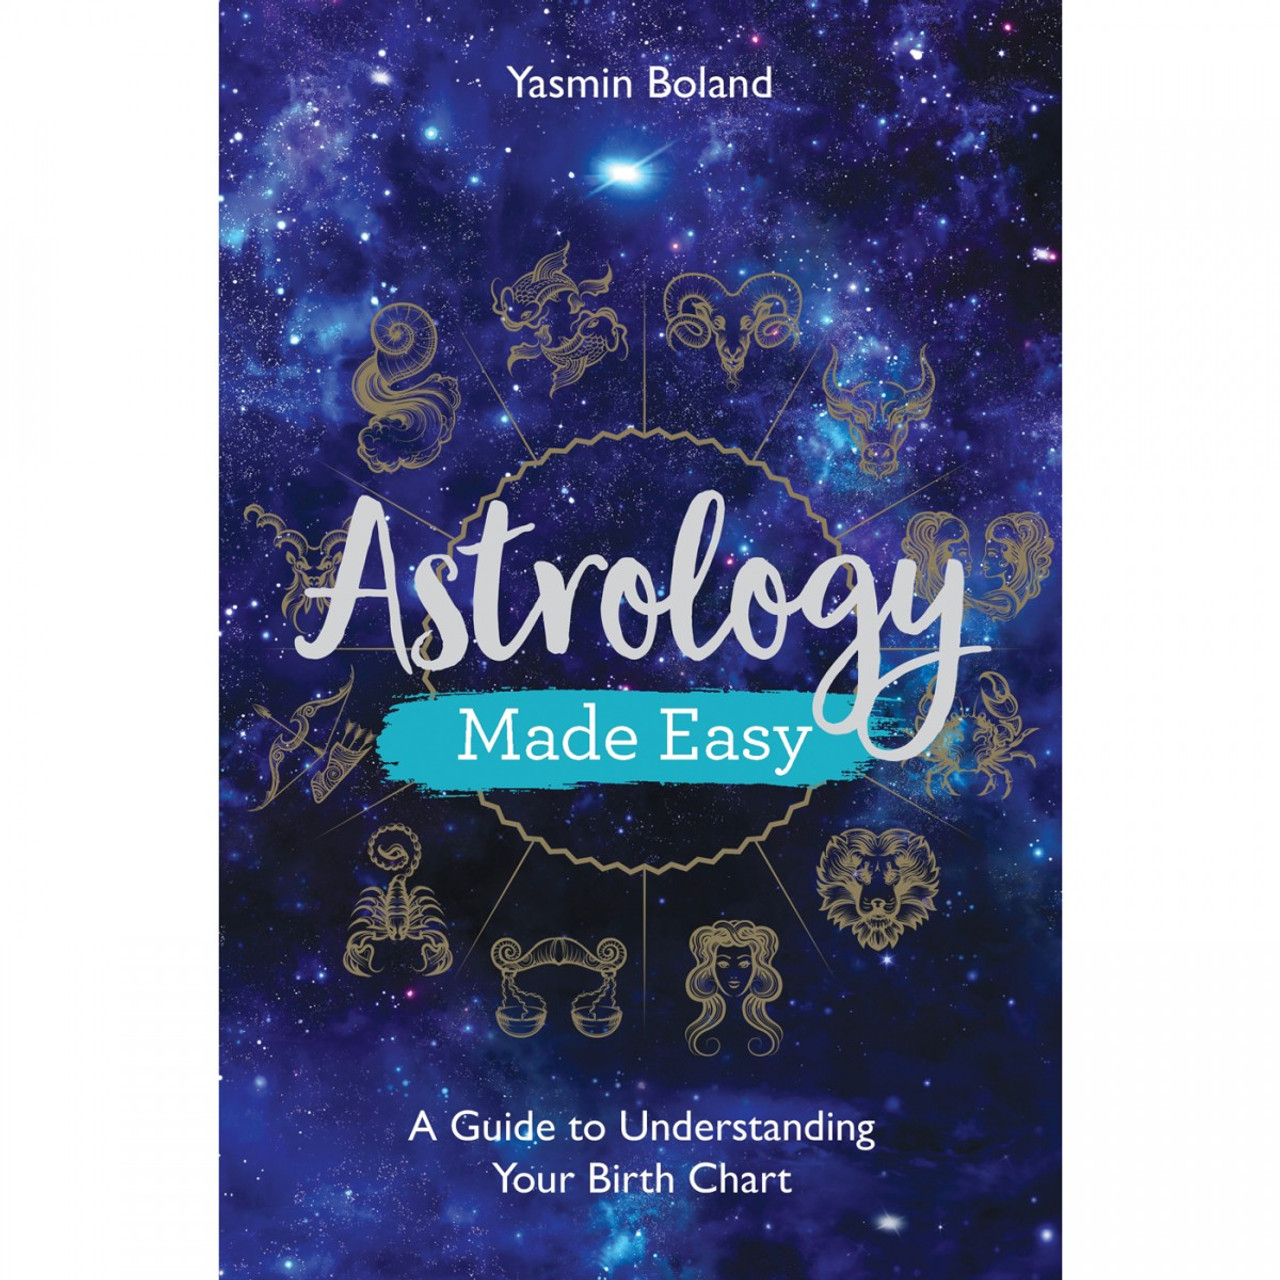 Astrology Made Easy by Yasmin Boland